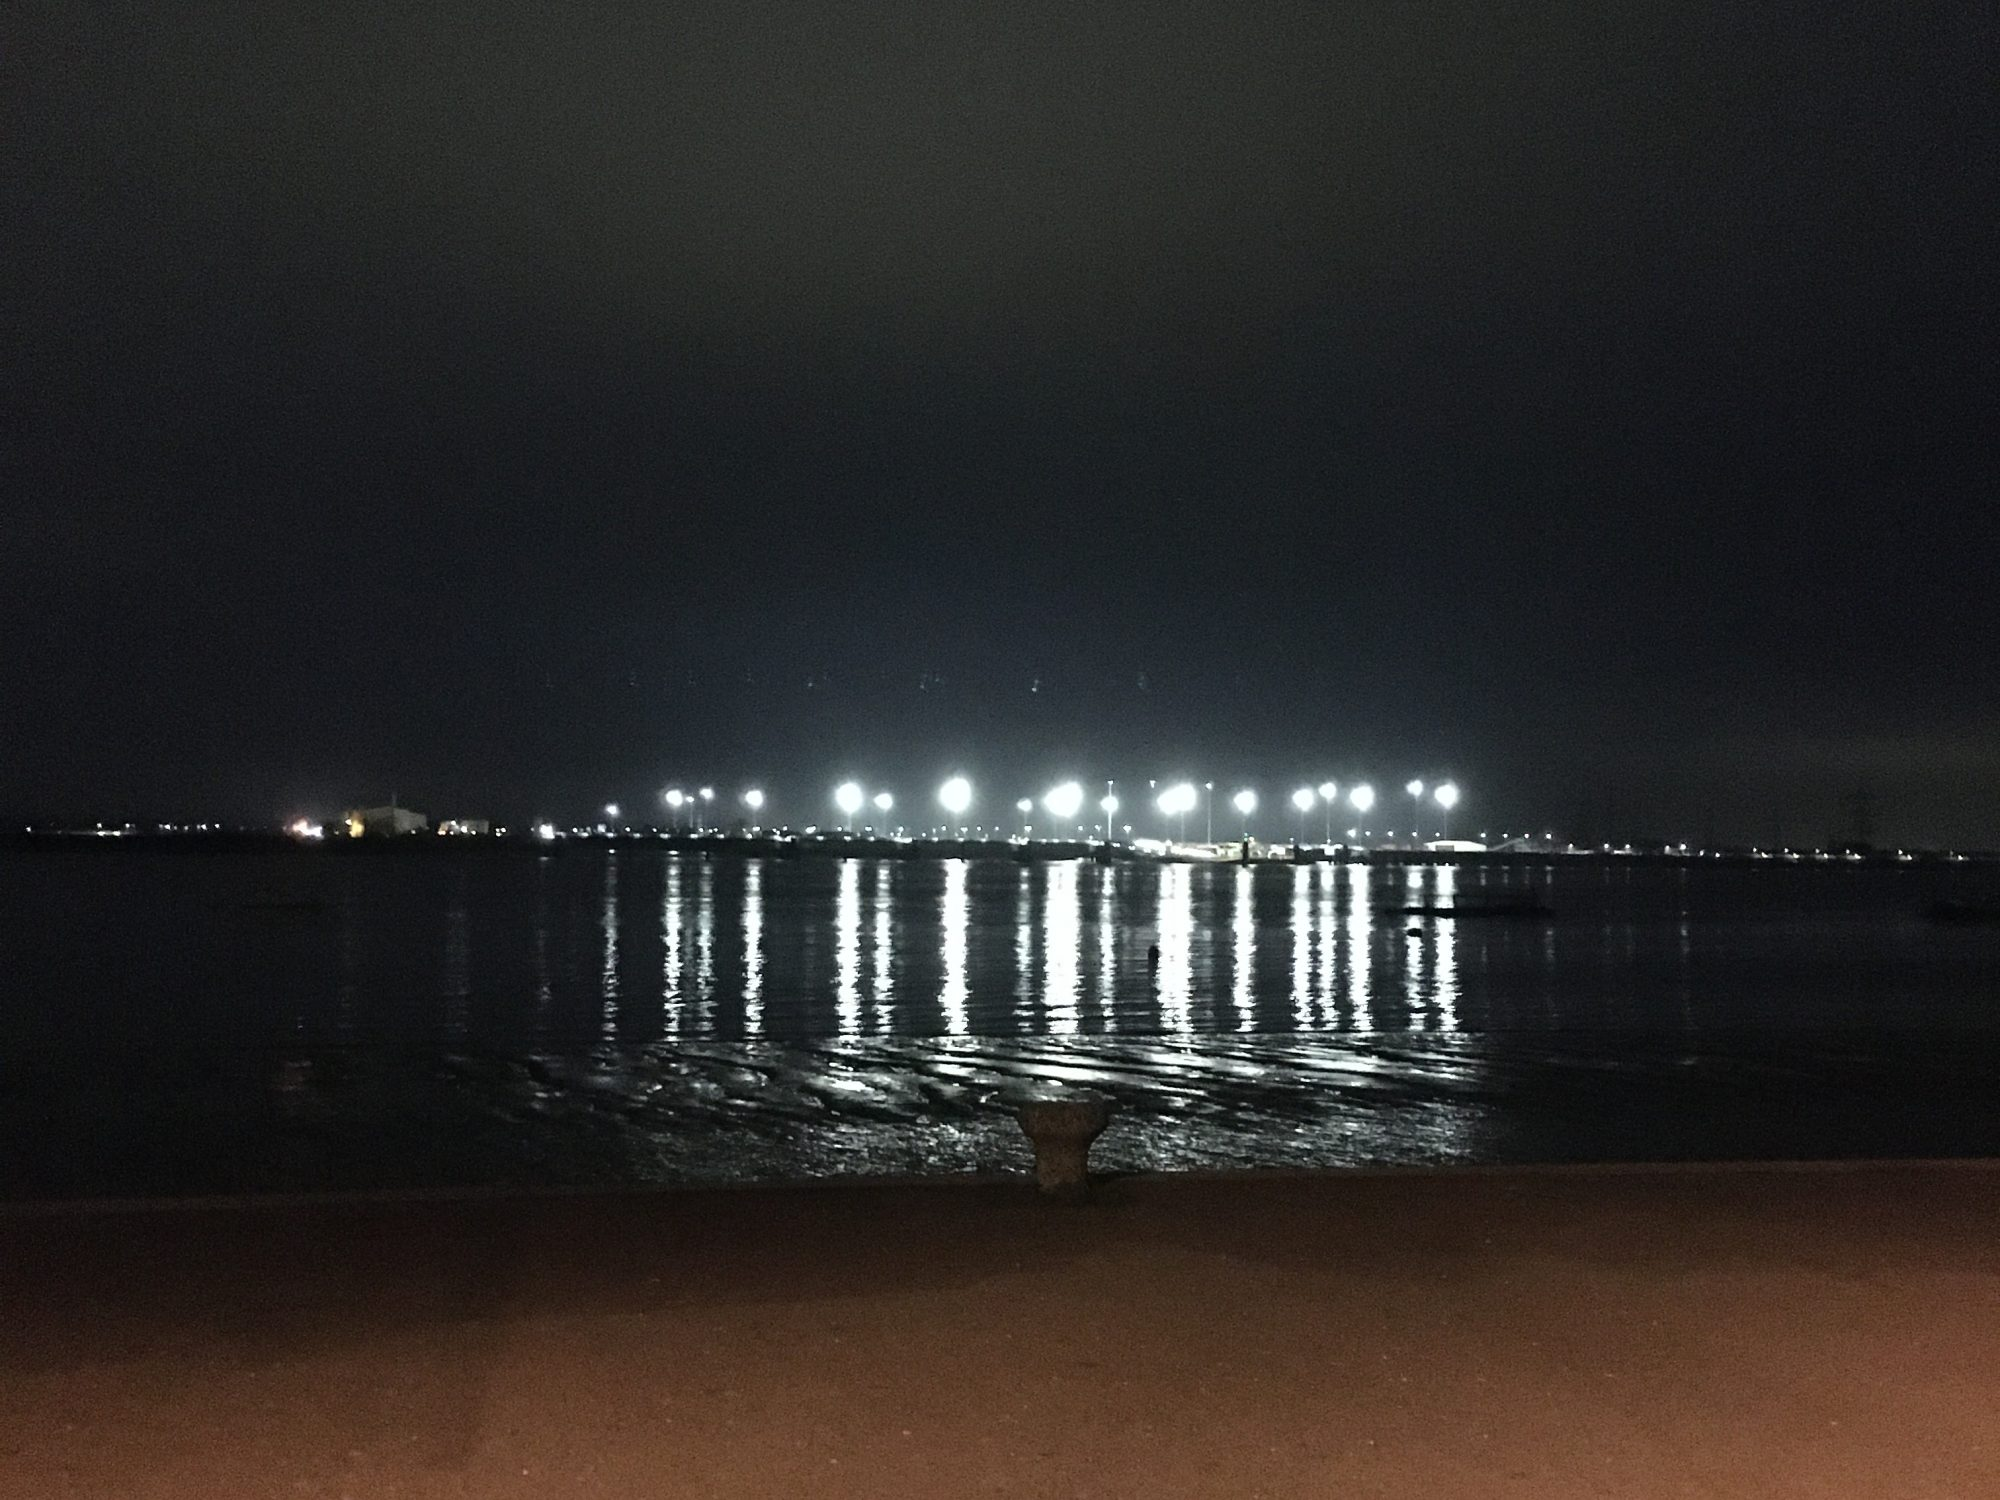 Lights in the distance